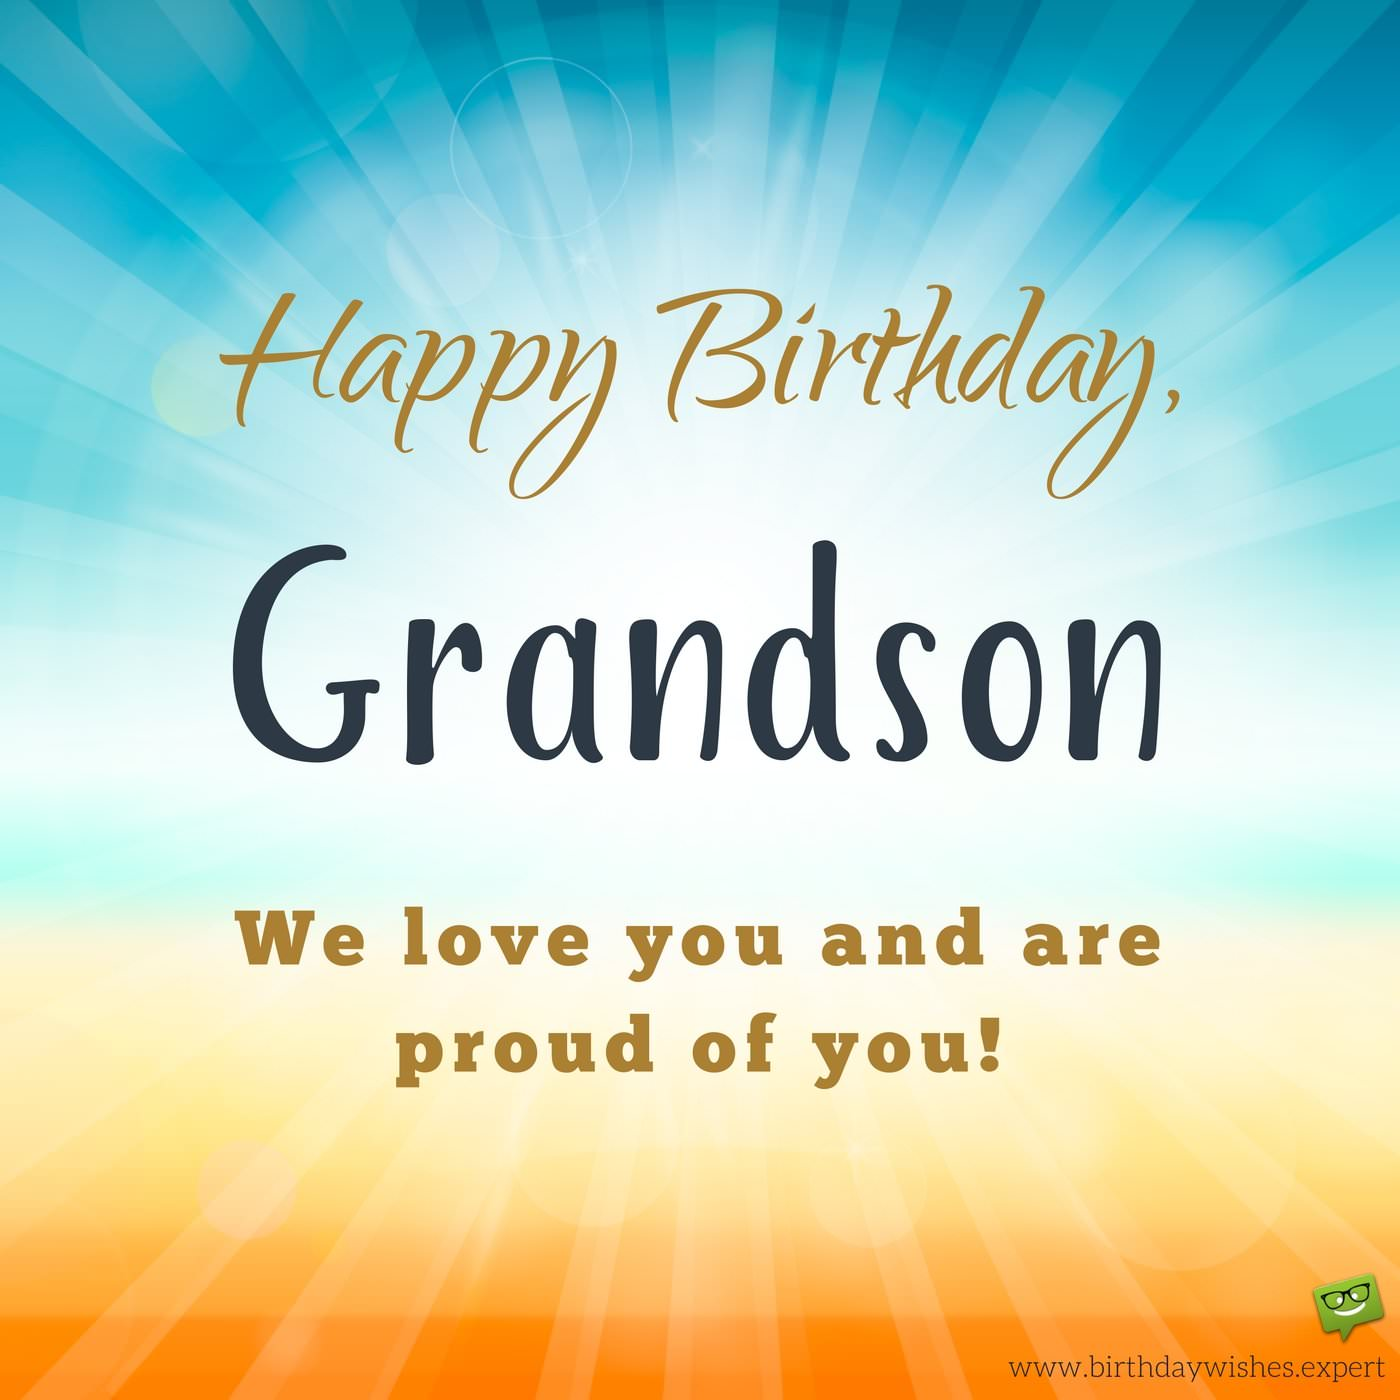 From your Grandma & Grandpa Birthday Wishes for my Grandson